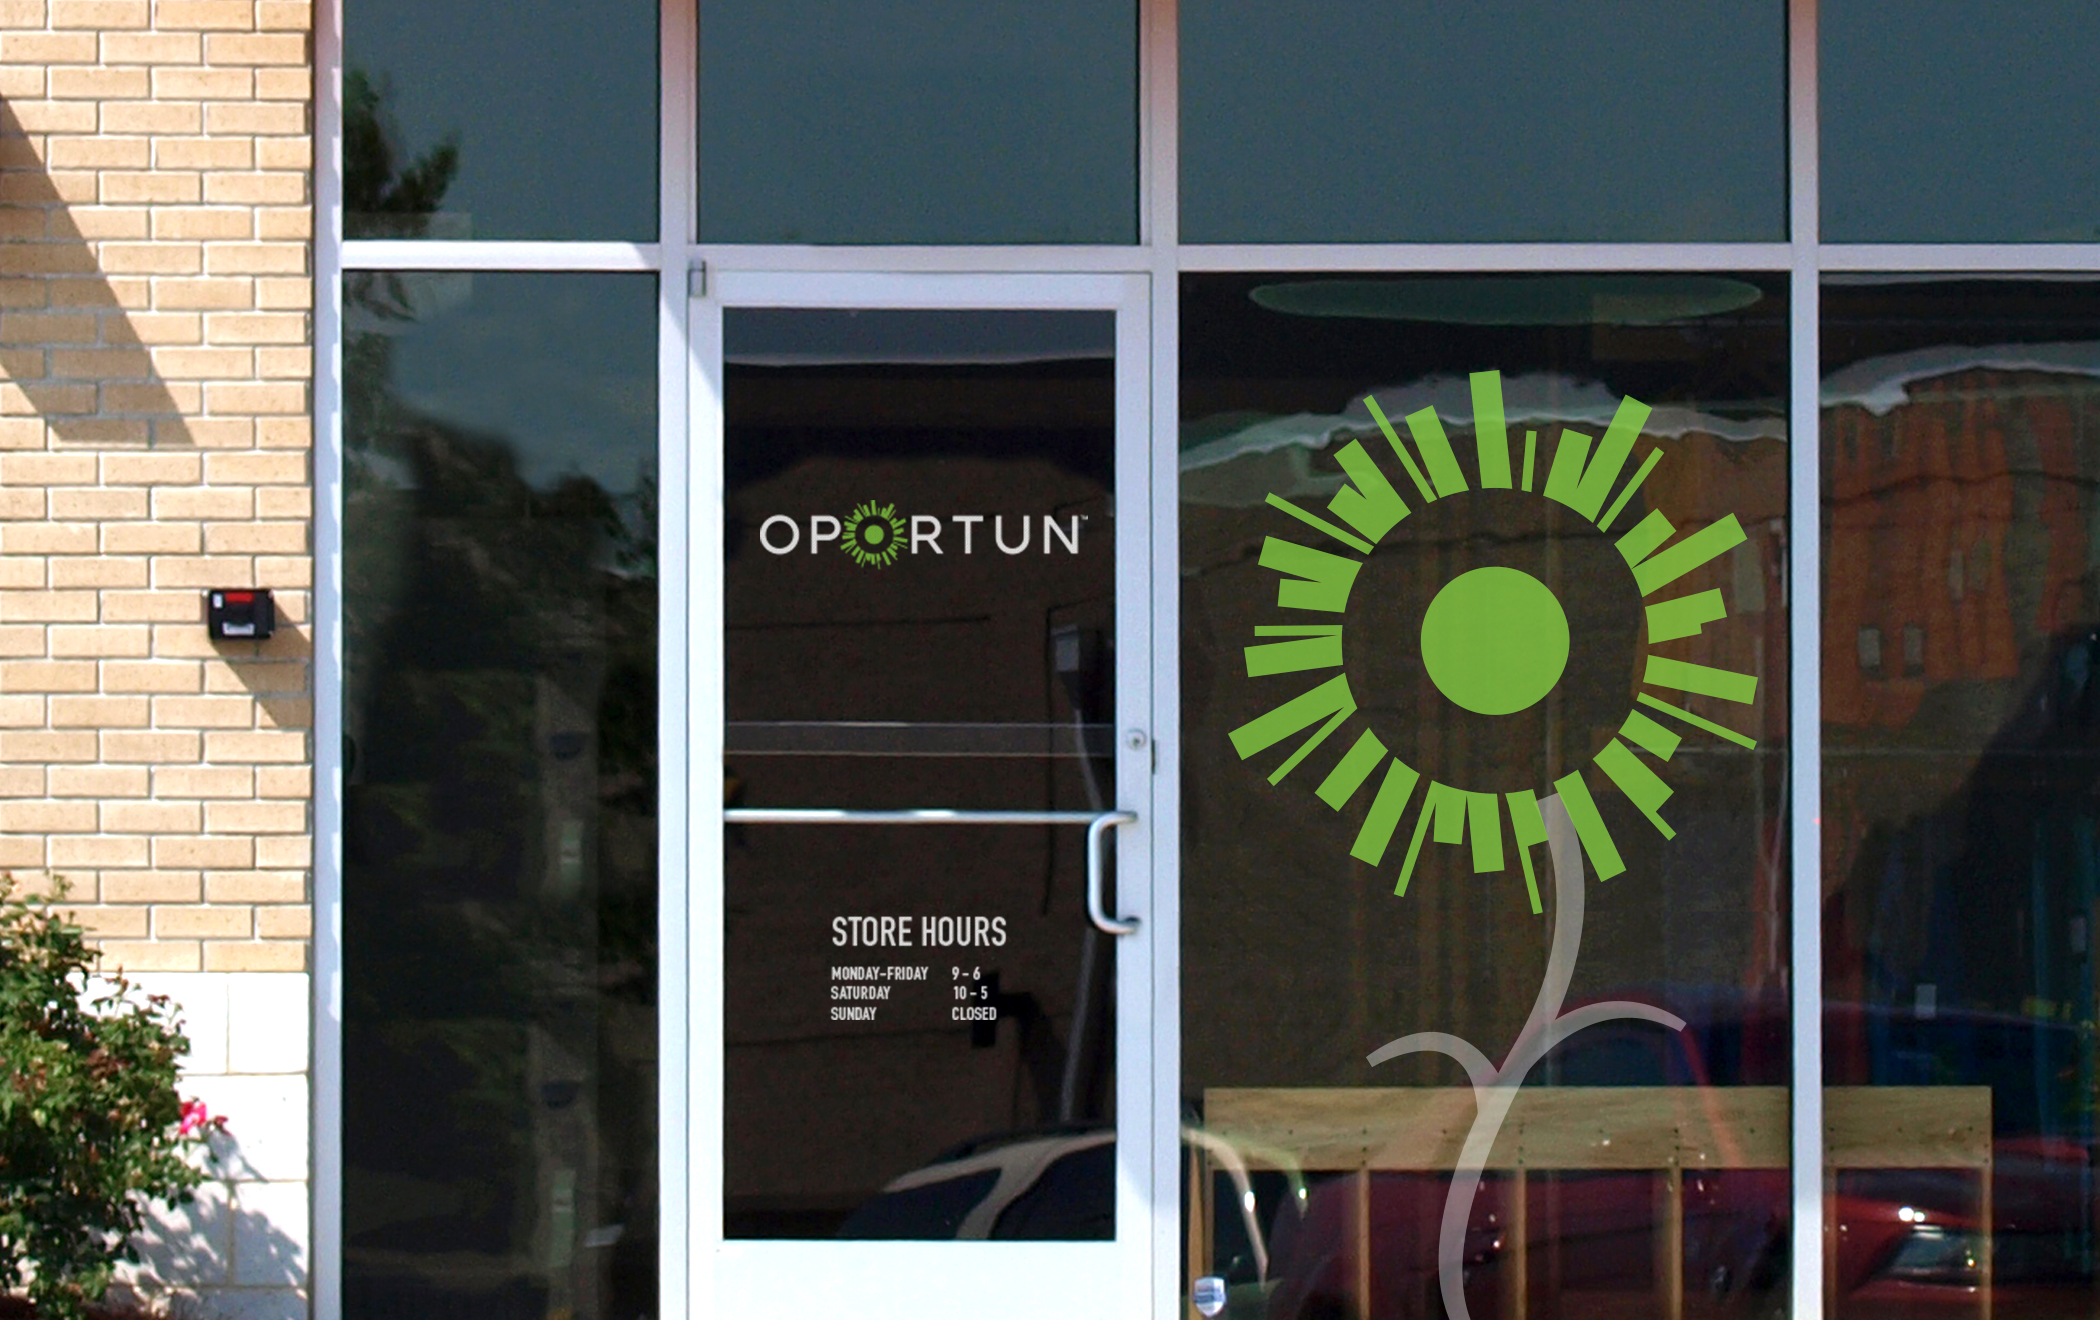 The Oportun logotype and large green-sun symbol on the window of a storefront.